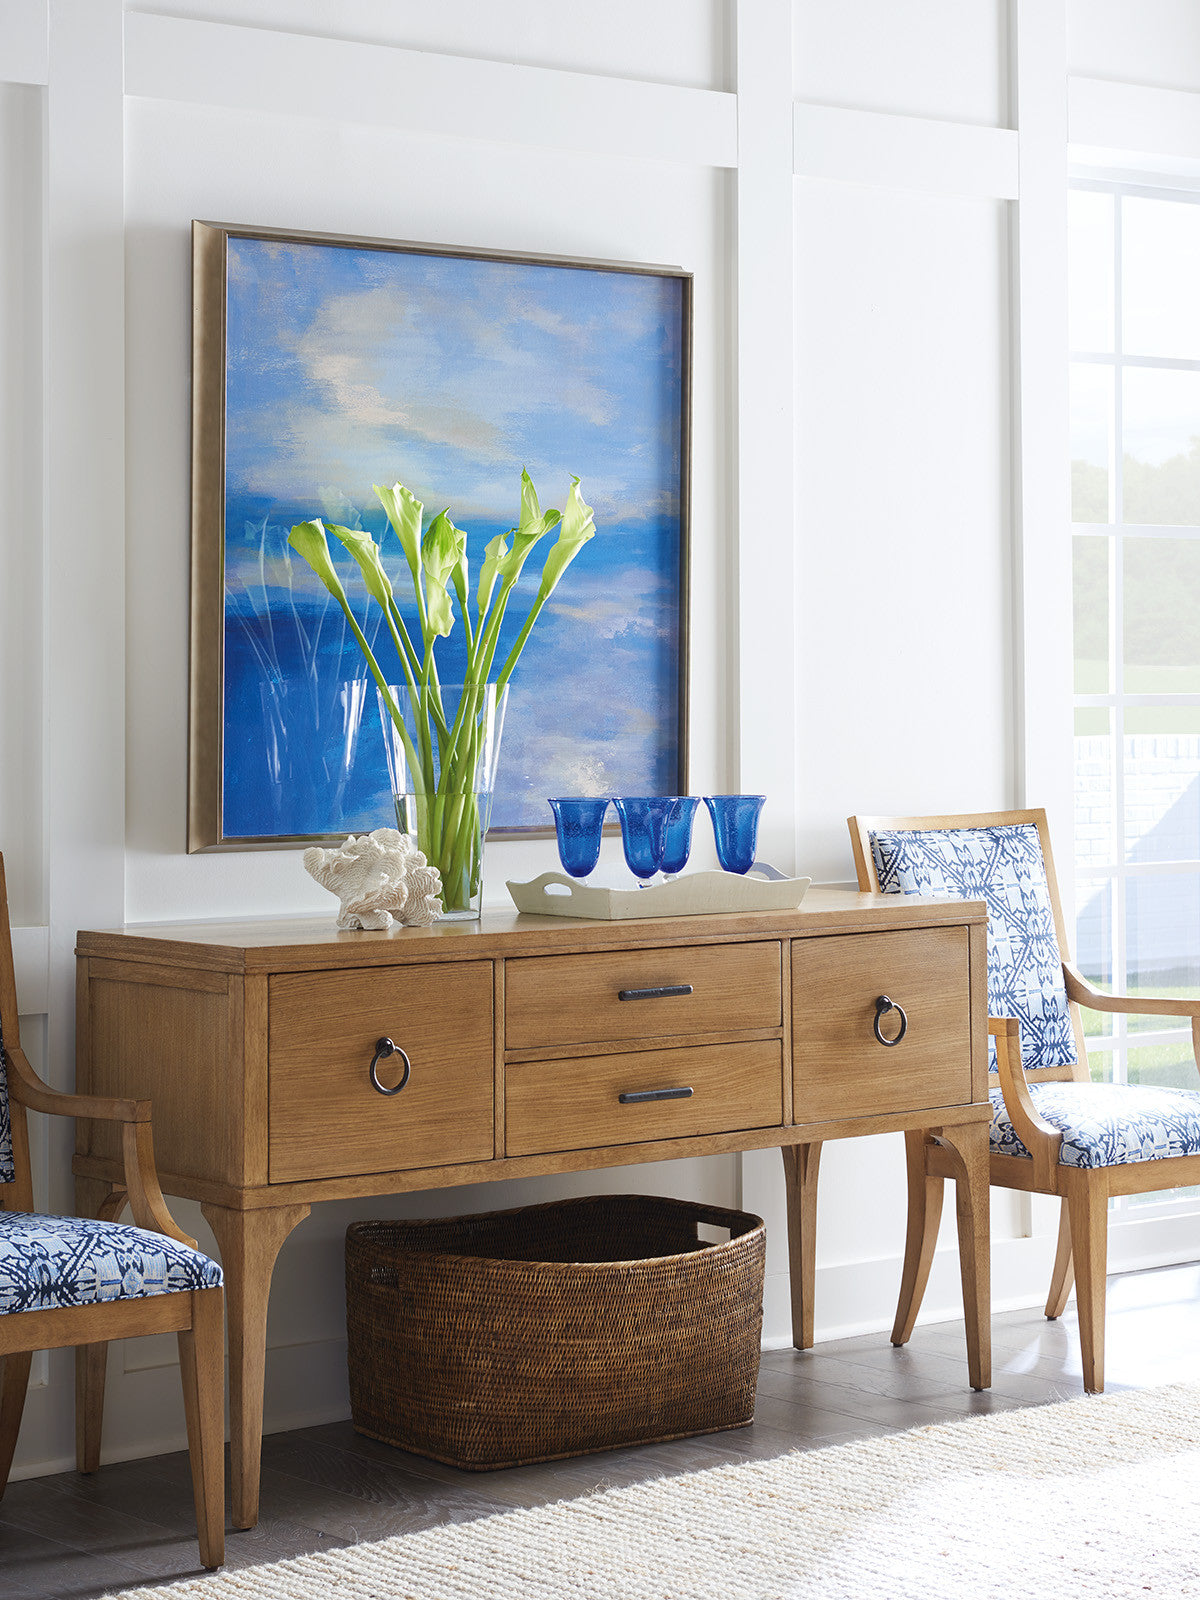 Seaside Sideboard in Sandstone